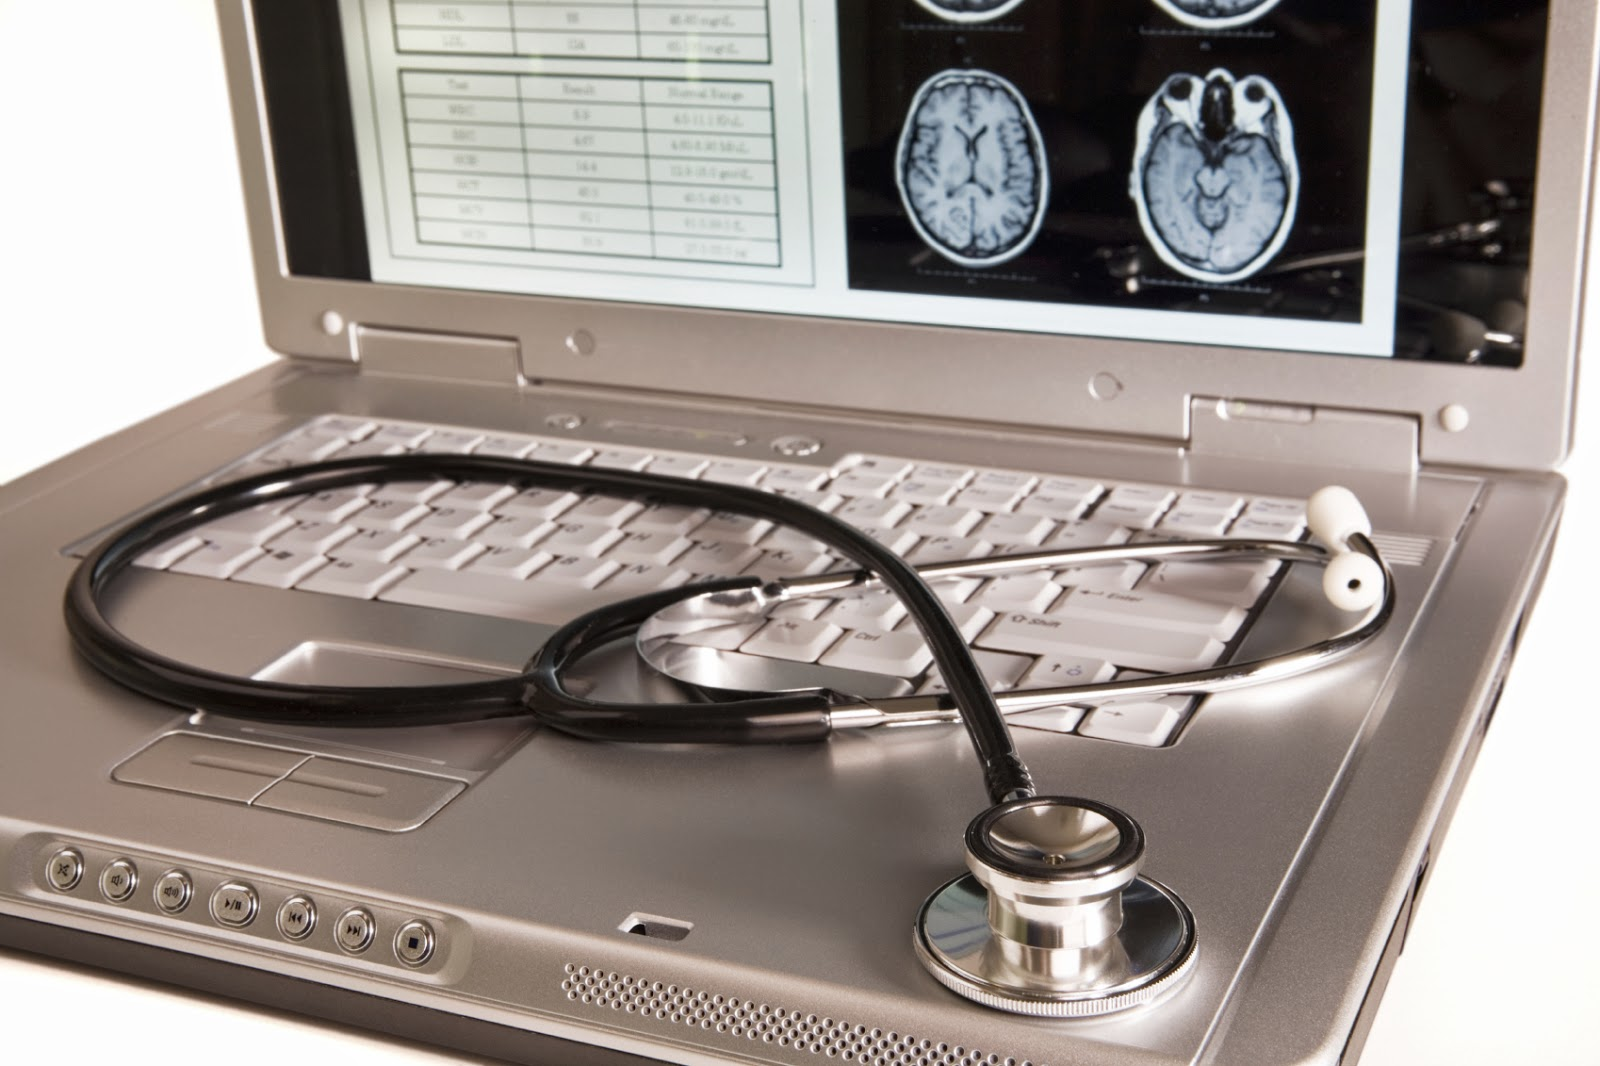 Workflow Analysis Helps to Implement EHR Software